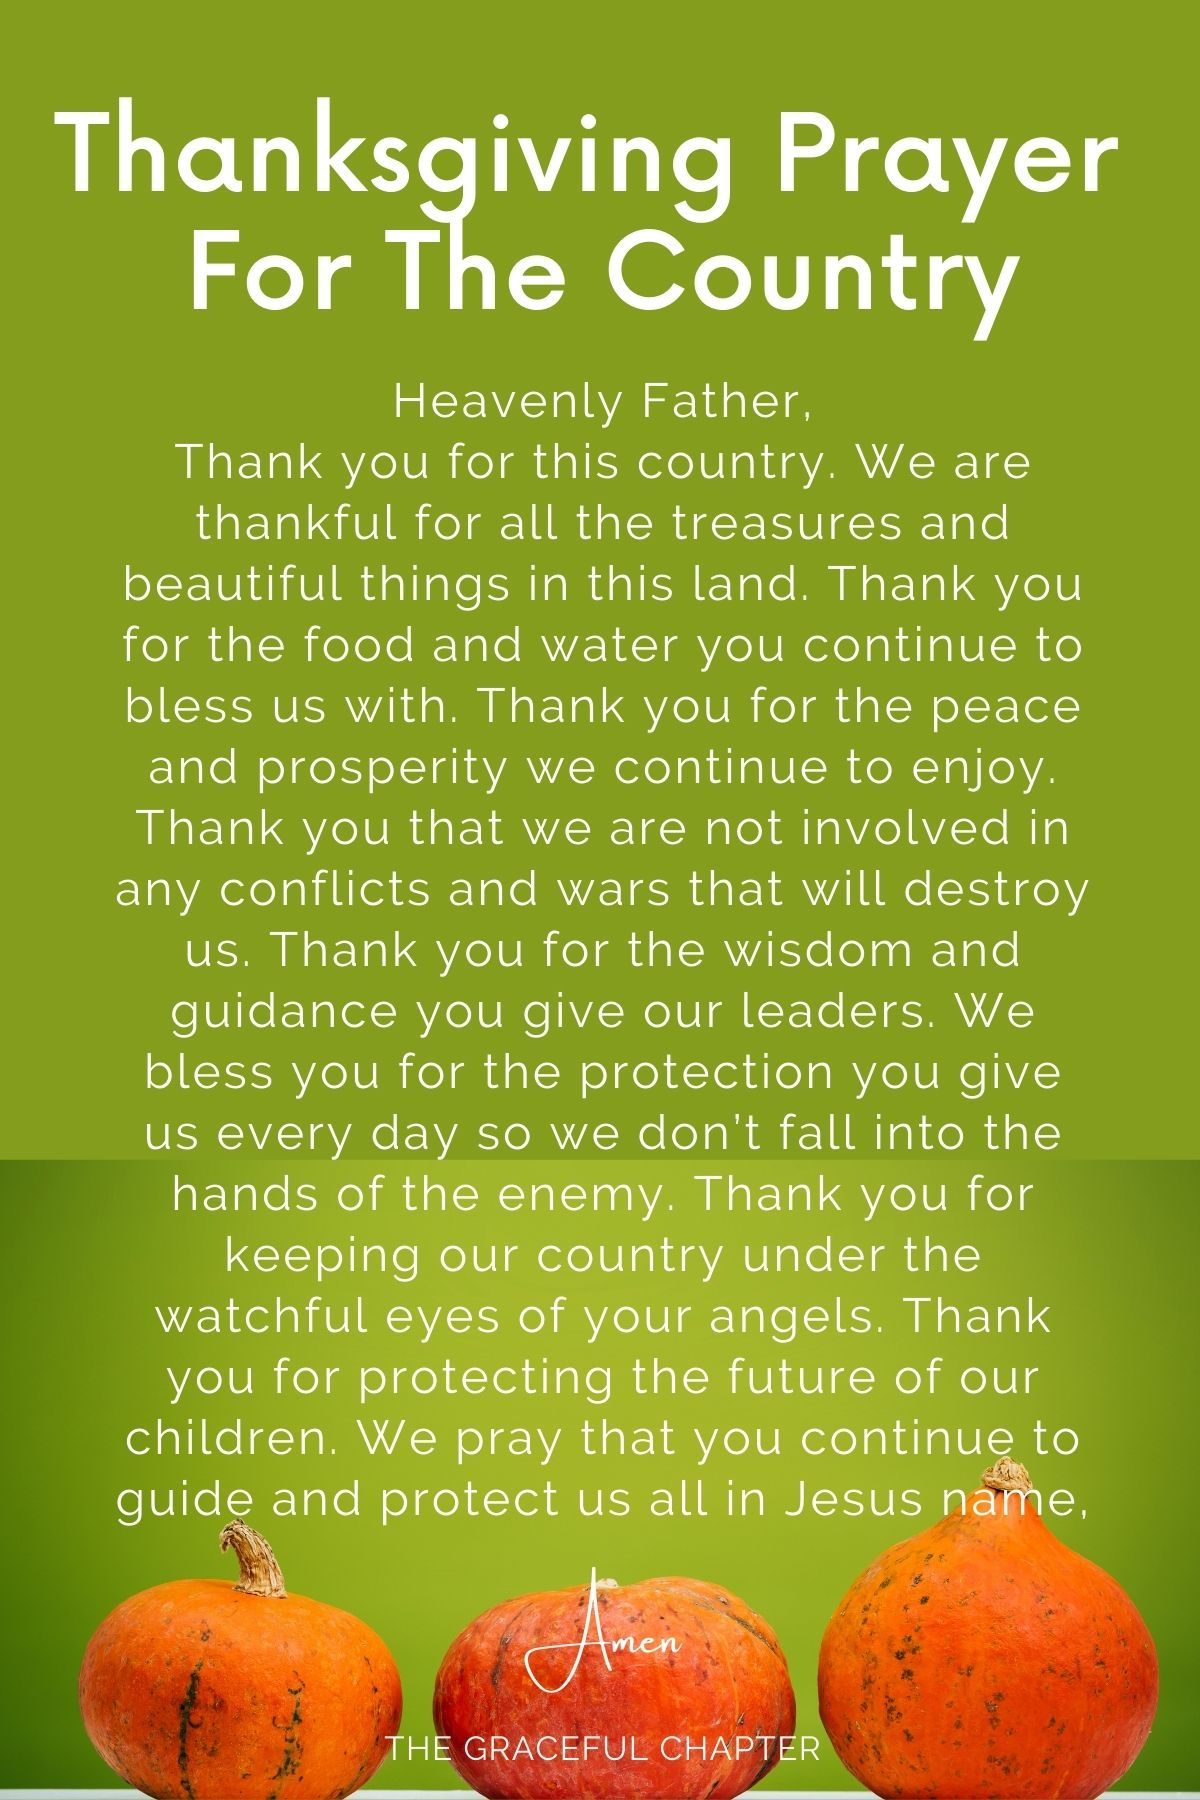 Thanksgiving prayer for the country - prayers for thanksgiving day